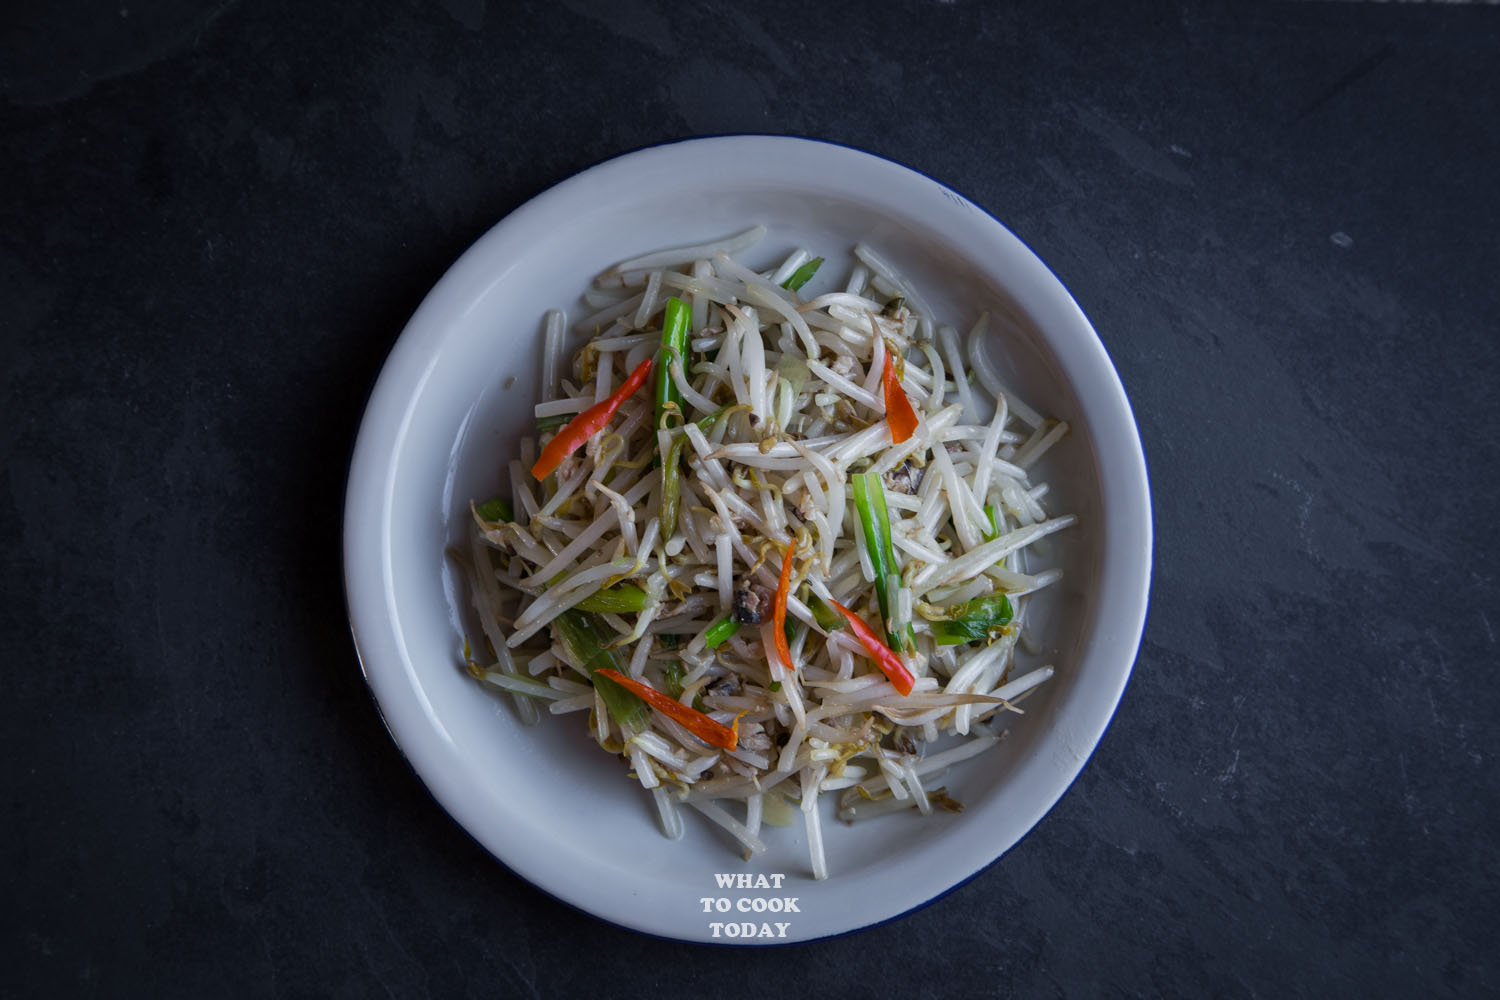 Tumis tauge ikan asin / Stir-fried bean sprouts with salted fish